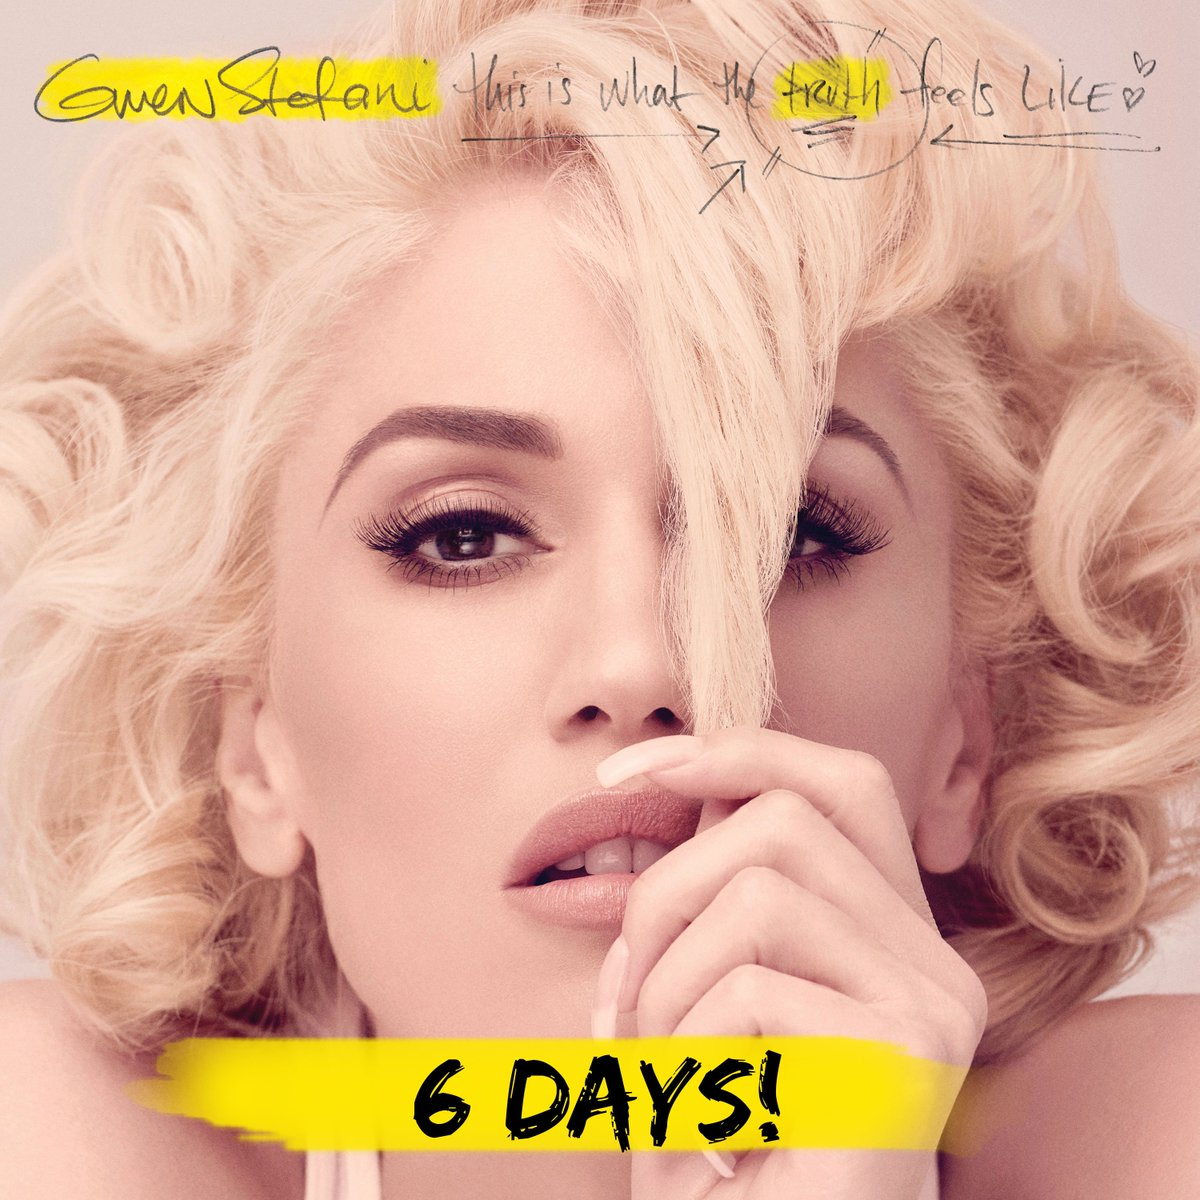 Countdown: 6 days left!!! #ThiIsWhatTheTurthFeelsLike @gwenstefani https://t.co/zgAnz81Gpo